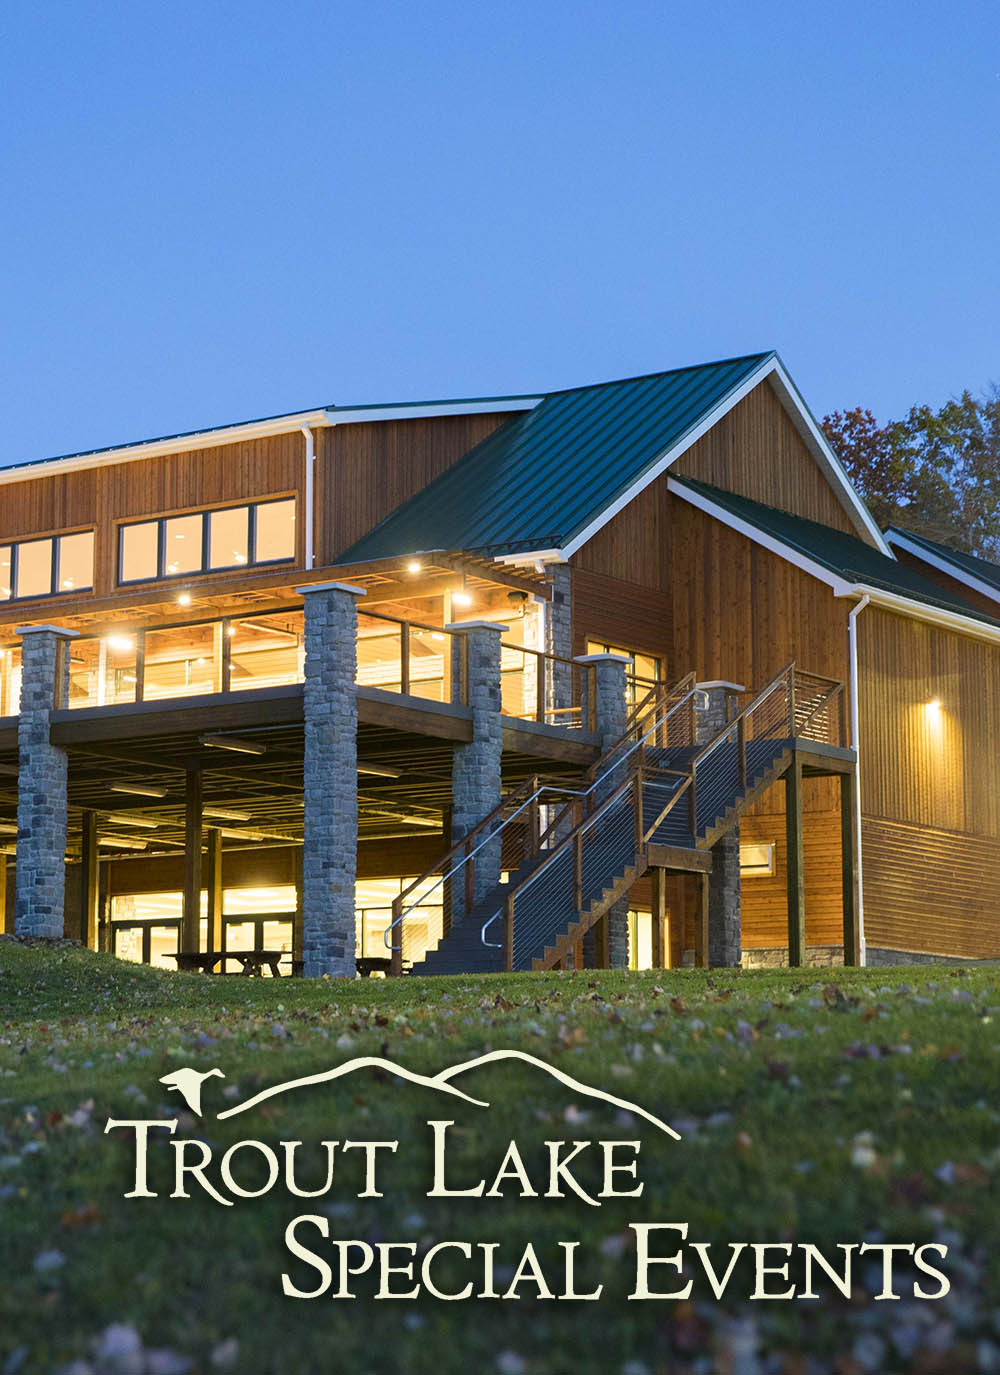 trout lake special events lit up at night